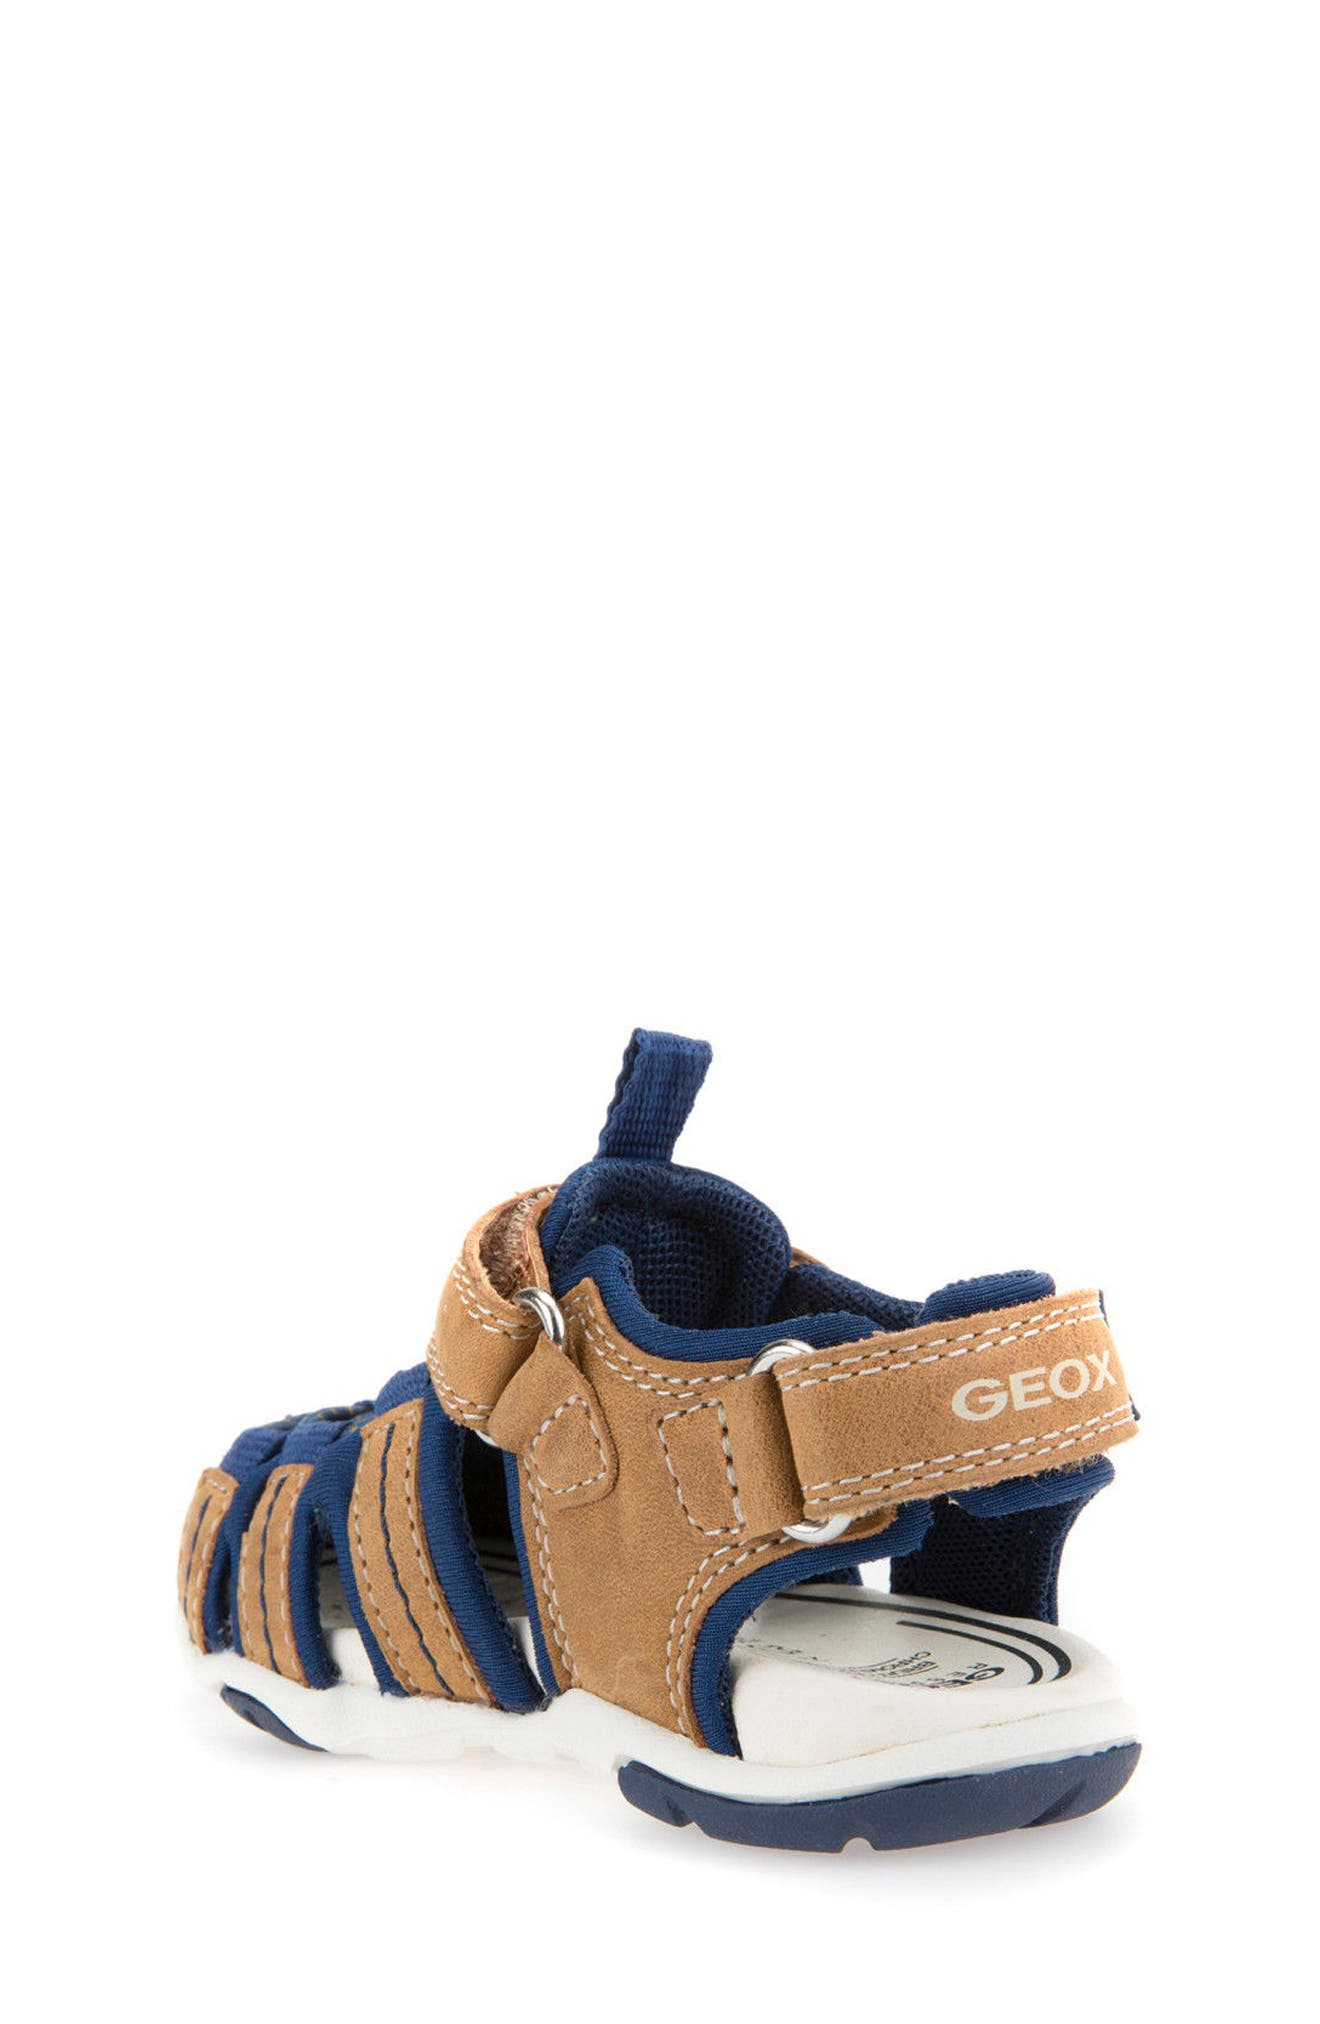 Agasim Fisherman Sandal,                             Alternate thumbnail 2, color,                             Caramel/ Navy